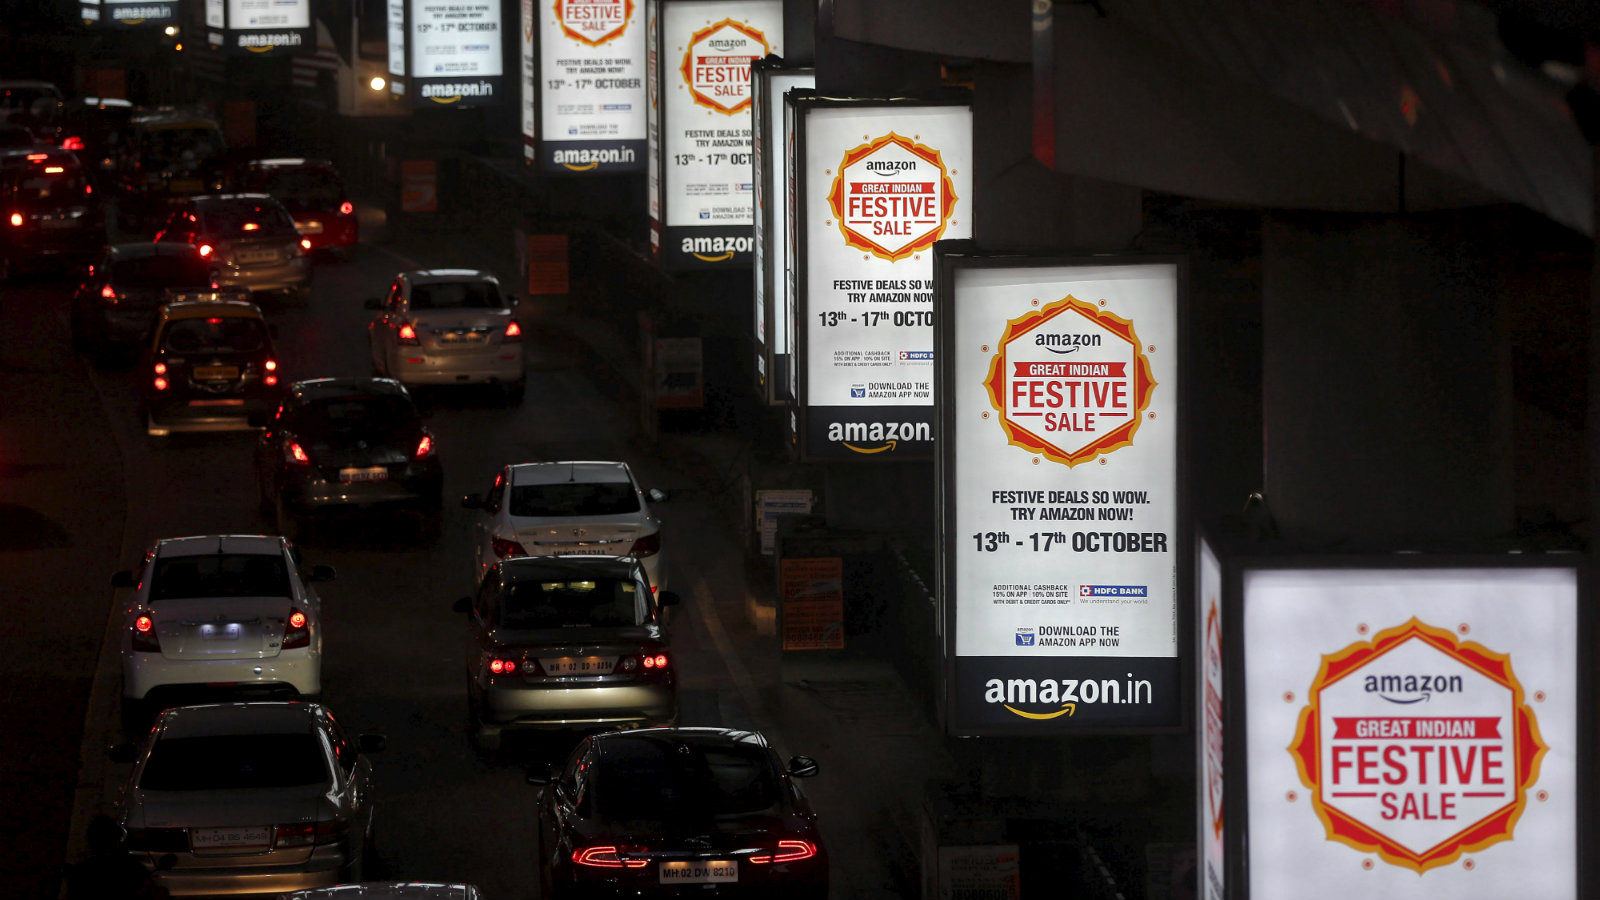 Traffic moves on a road past advertisements of Indian online marketplace Amazon, in Mumbai, India, October 15, 2015. Amazon.com could emerge as the biggest winner from one of India's most important festive - and shopping - seasons that began this week, after the e-tailer offered steep discounts, swift delivery and even gold bars to grab market share. The month-long festive season culminates around November 10 in Diwali, or the Festival of Lights, but the first nine days are considered an especially auspicious time to make big purchases. Picture taken October 15, 2015.